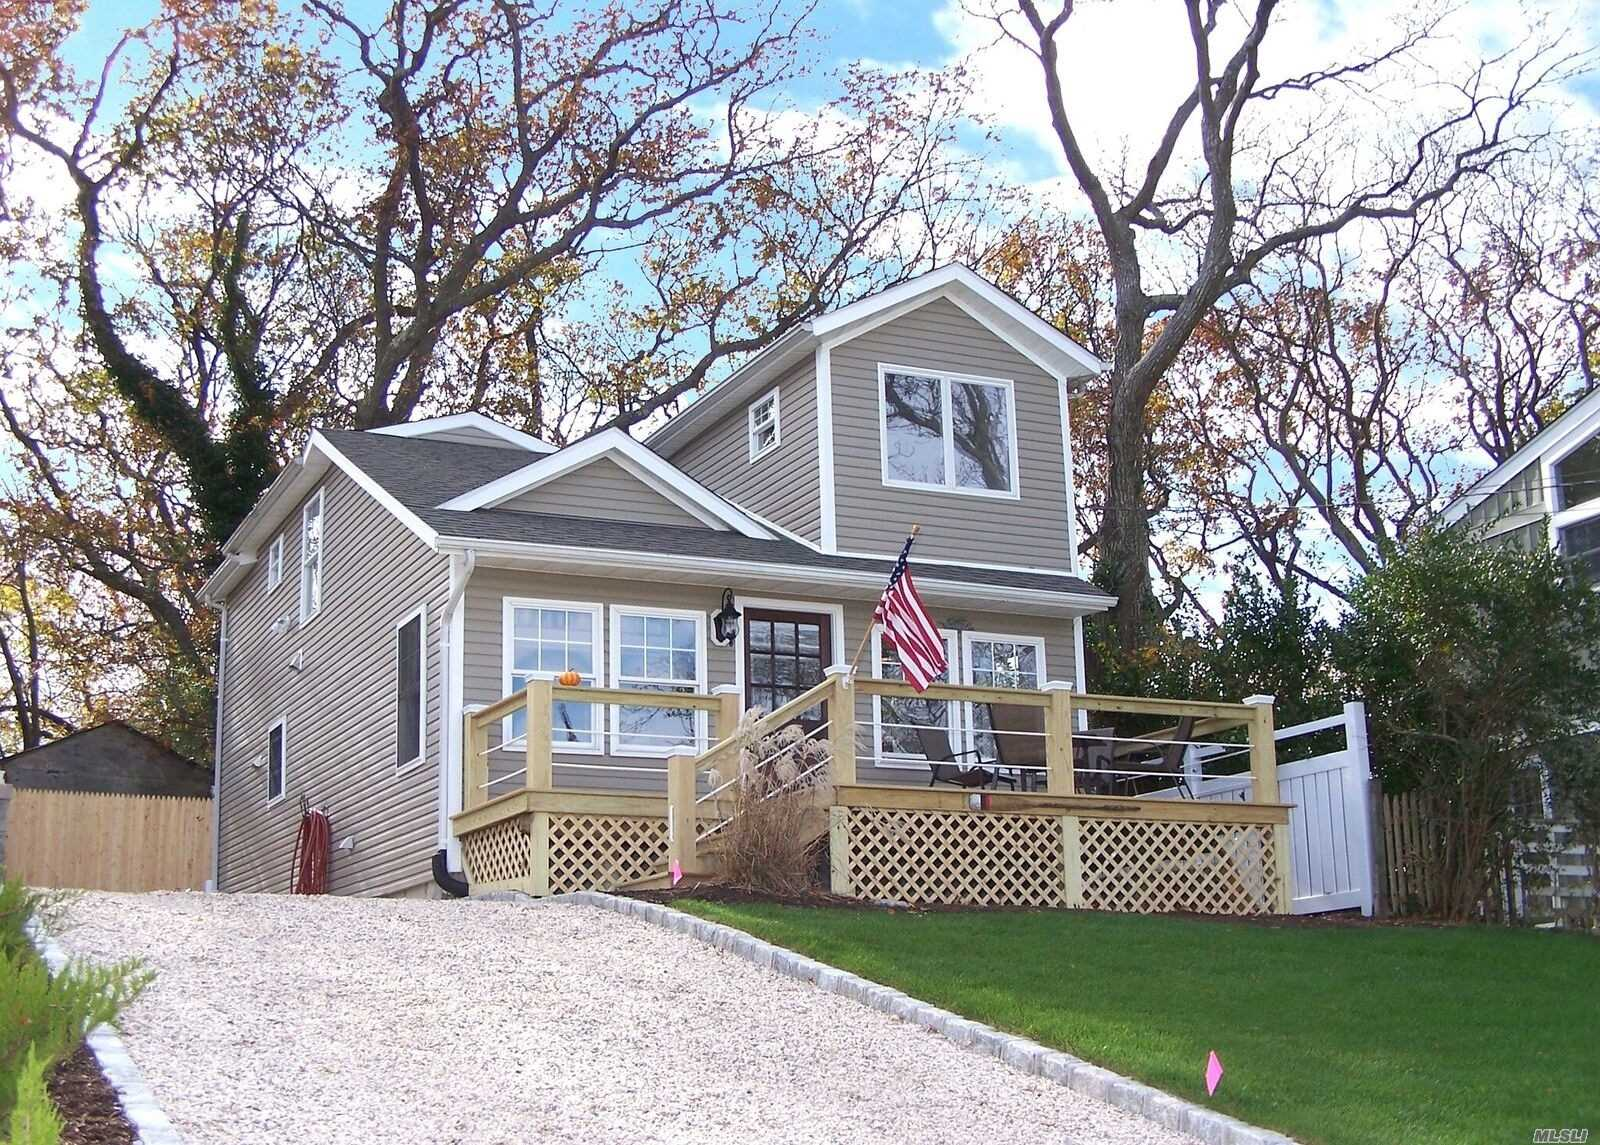 Gorgeous Water View Home Overlooking Li Sound! This Stunning Newly Renovated 2 Bed 2 Bath Offers An Open Floor Plan Allowing Water Views From Anywhere In The House Including A Loft Overlooking The Living Room! Hardwood Floors, New Kitchen With Shaker Cabinets, Ss Appliances And Granite Counter Tops. Elegant Touches Bring Comfort And Charm As You Move To The Deck Out Front To Enjoy The Water And Truly Serene Environment! Private Beach Rights And Low Taxes! A Rare Opportunity And A Must See!